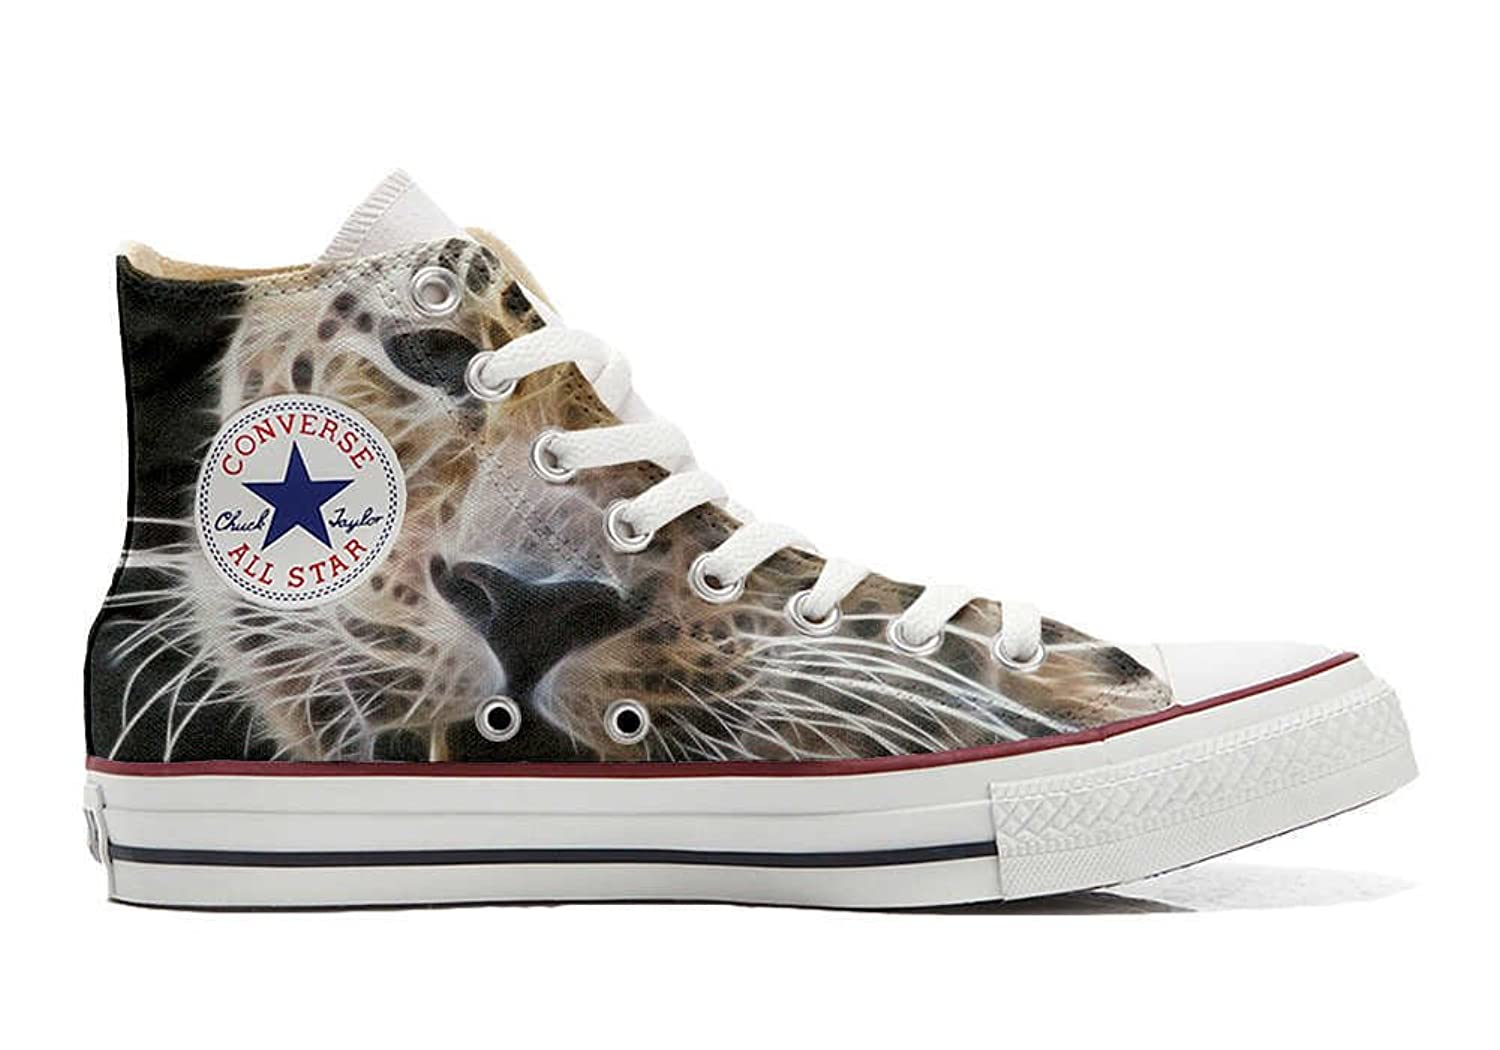 Converse All Star personalisierte Schuhe - HANDMADE SHOES - Tiger Style  43 EU